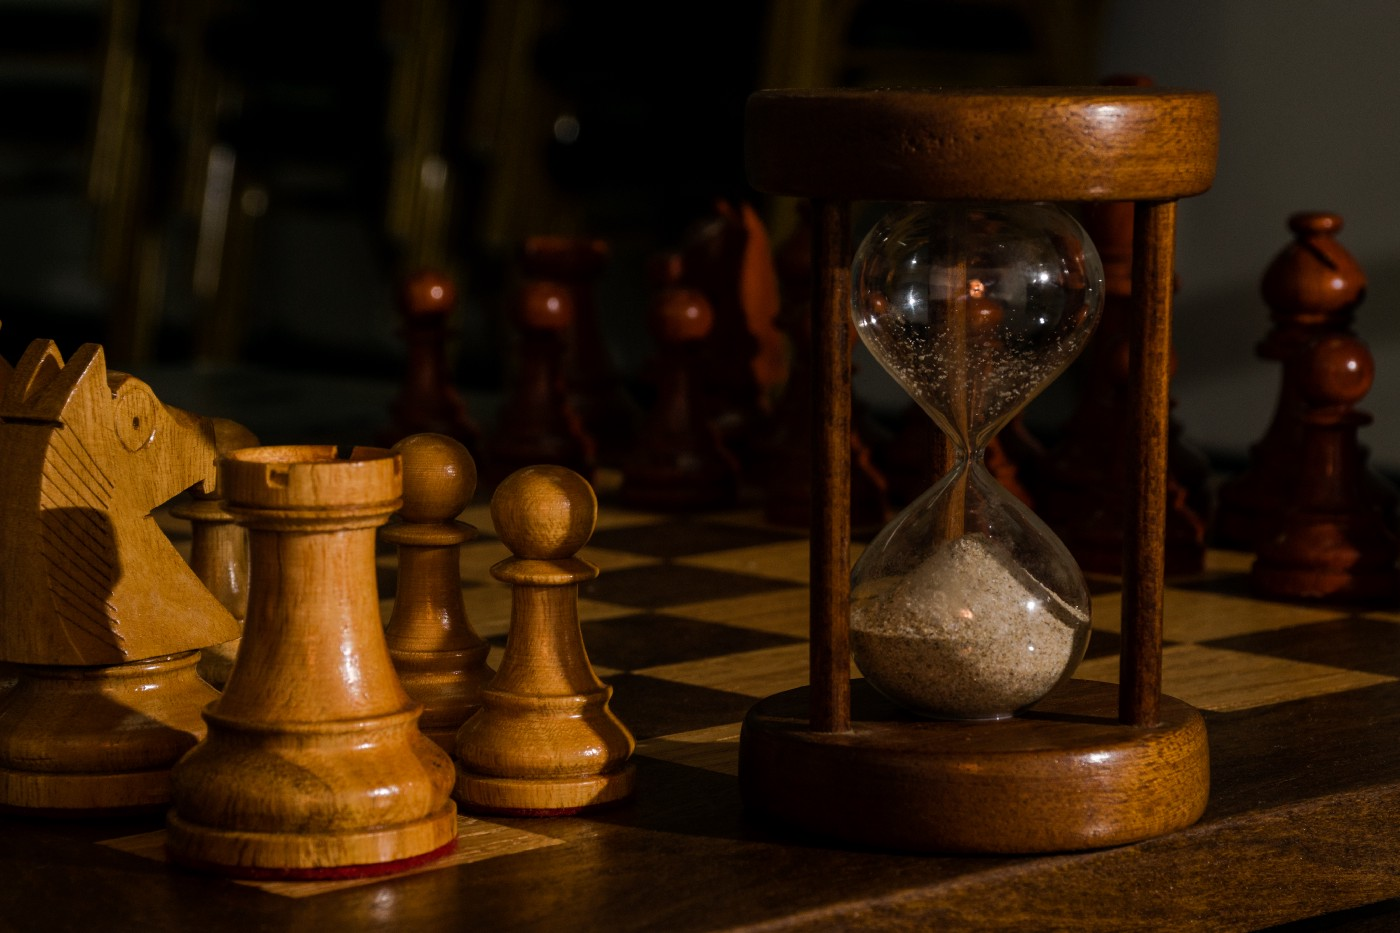 an antique wooden hourglass placed on a chess board with several of the pawns next to it. The pawns are also wooden